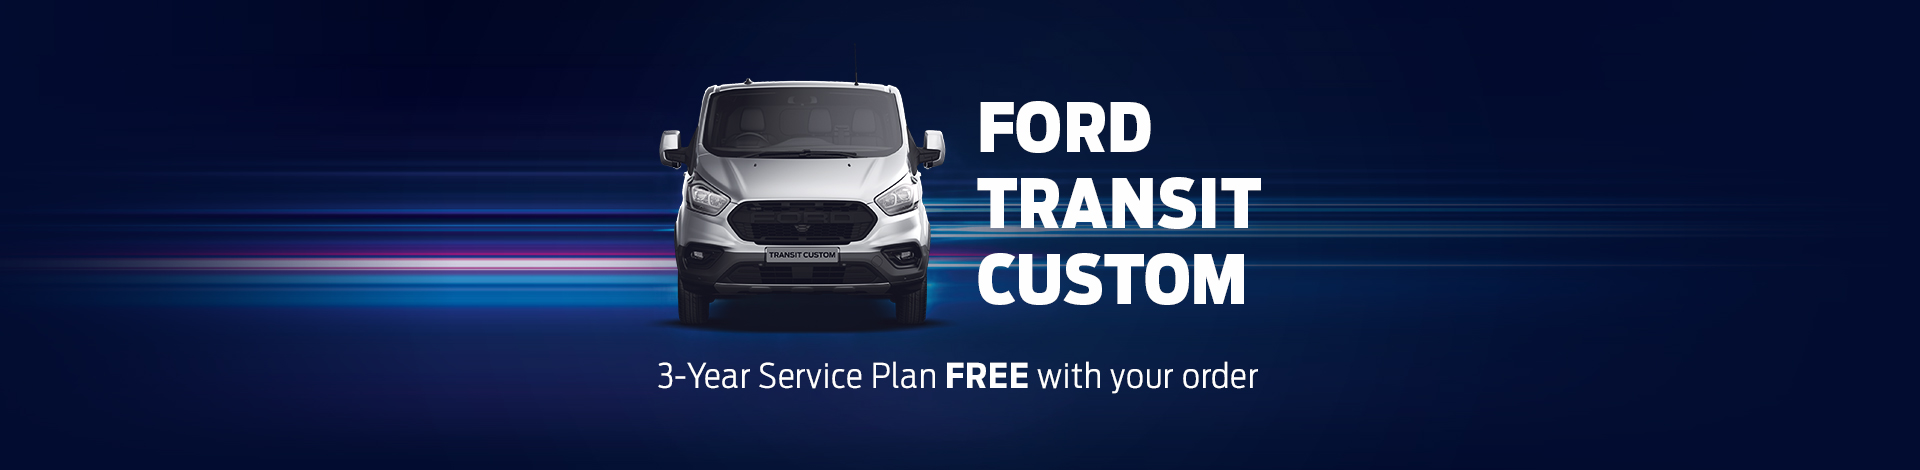 Transit Custom Service Plan Offer - EXPIRES 31-03-21